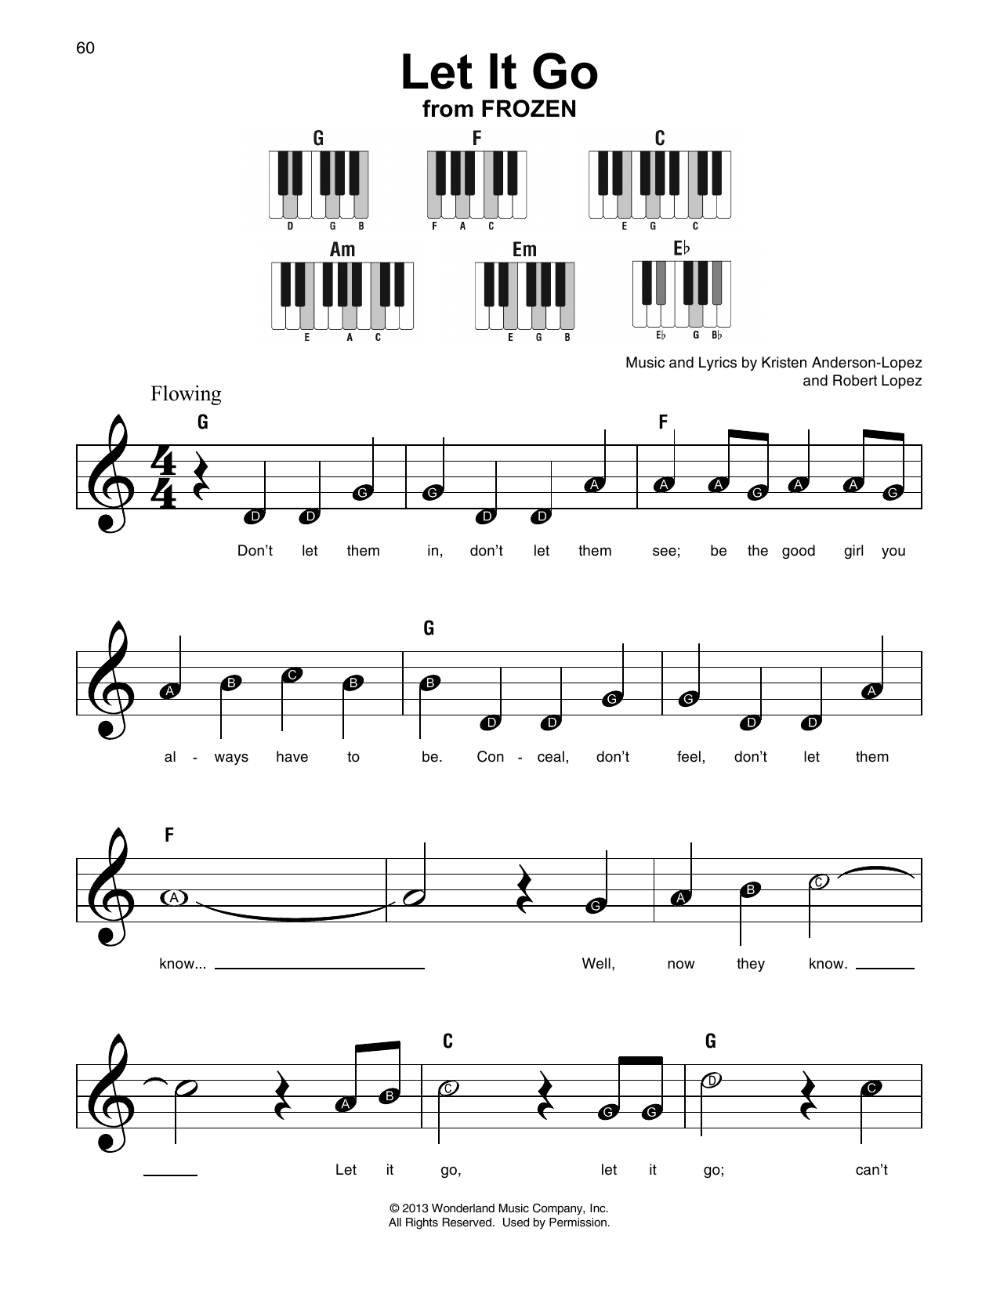 Let It Go From Frozen Sheet Music Idina Menzel Super Easy Piano Piano Songs Sheet Music Clarinet Sheet Music Keyboard Sheet Music